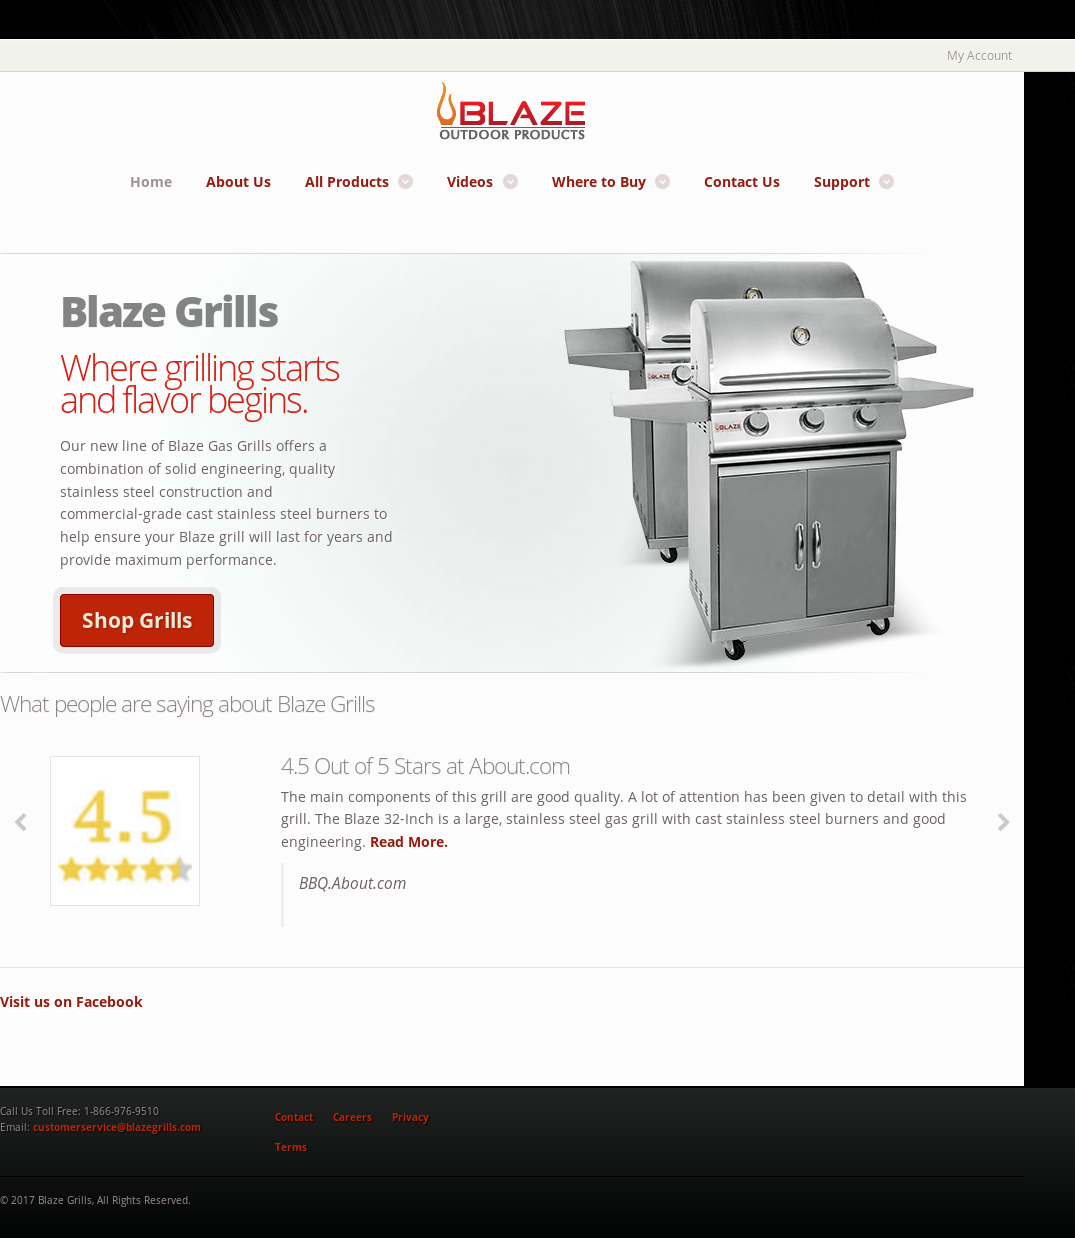 Blaze Grills Competitors, Revenue and Employees - Owler